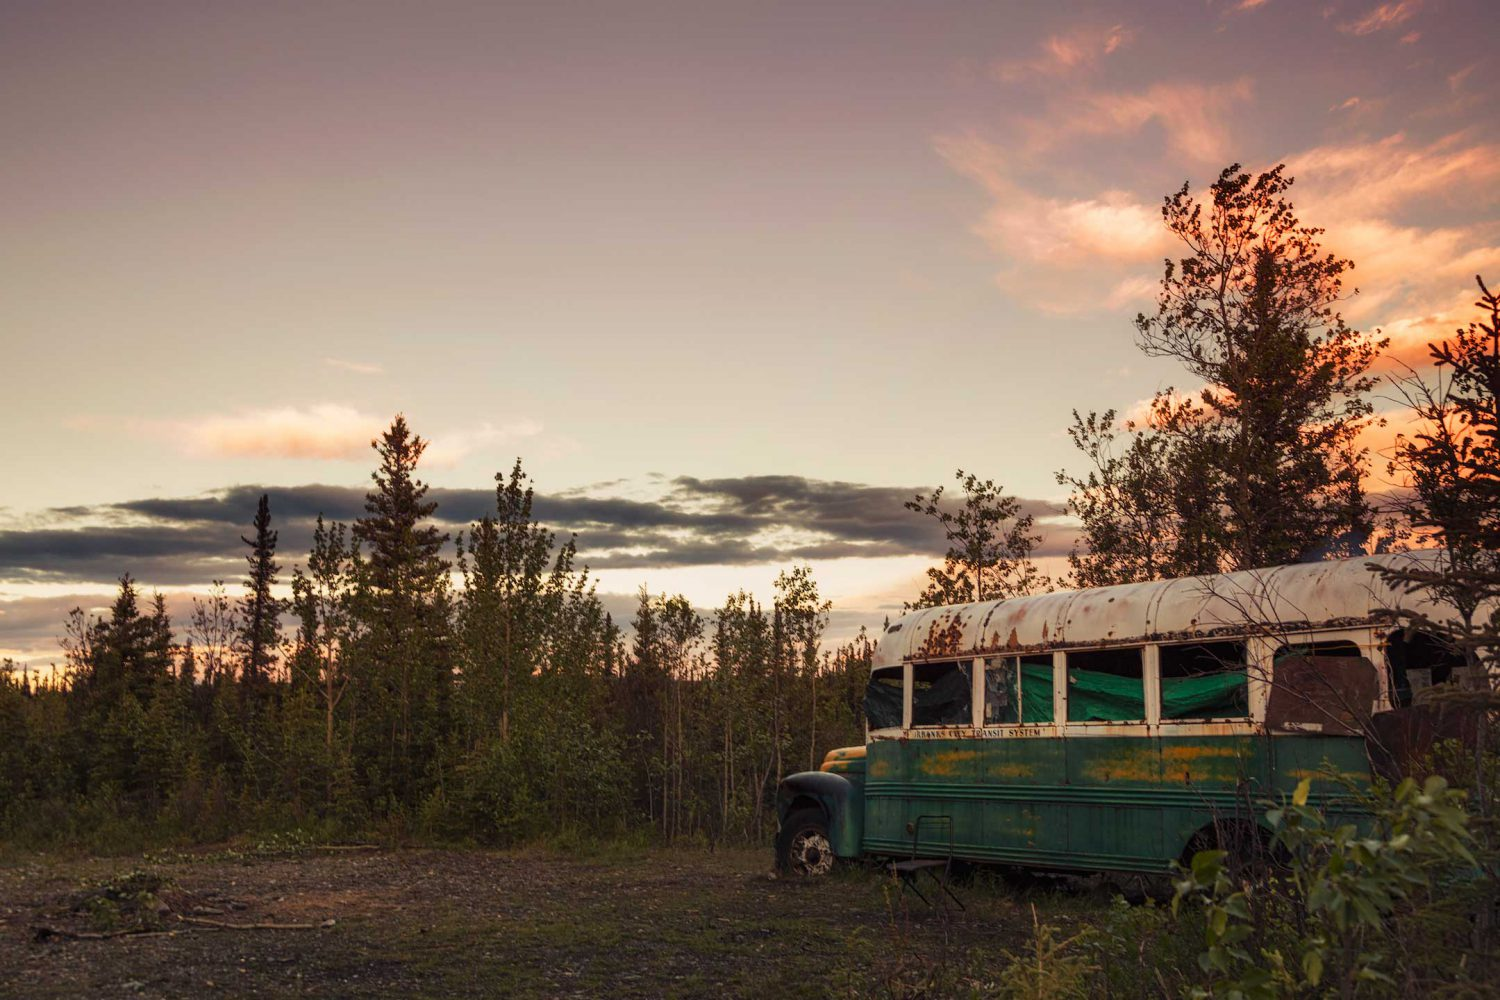 Chris McCandless: An Adventure That Never Died